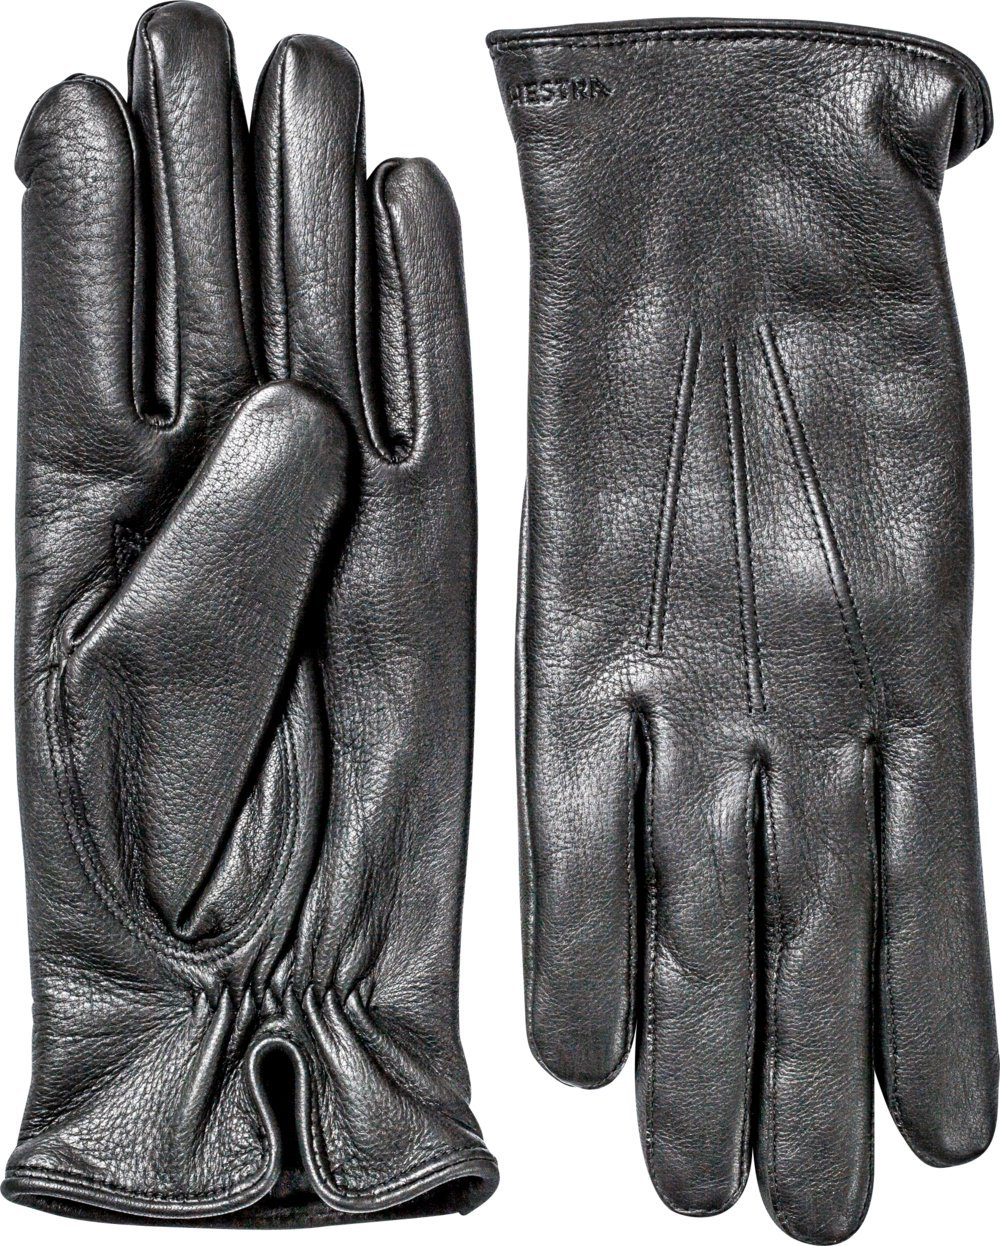 Hestra Mens Leather Gloves: Norman Cold Weather Wool Lined Winter Gloves, Black, 10